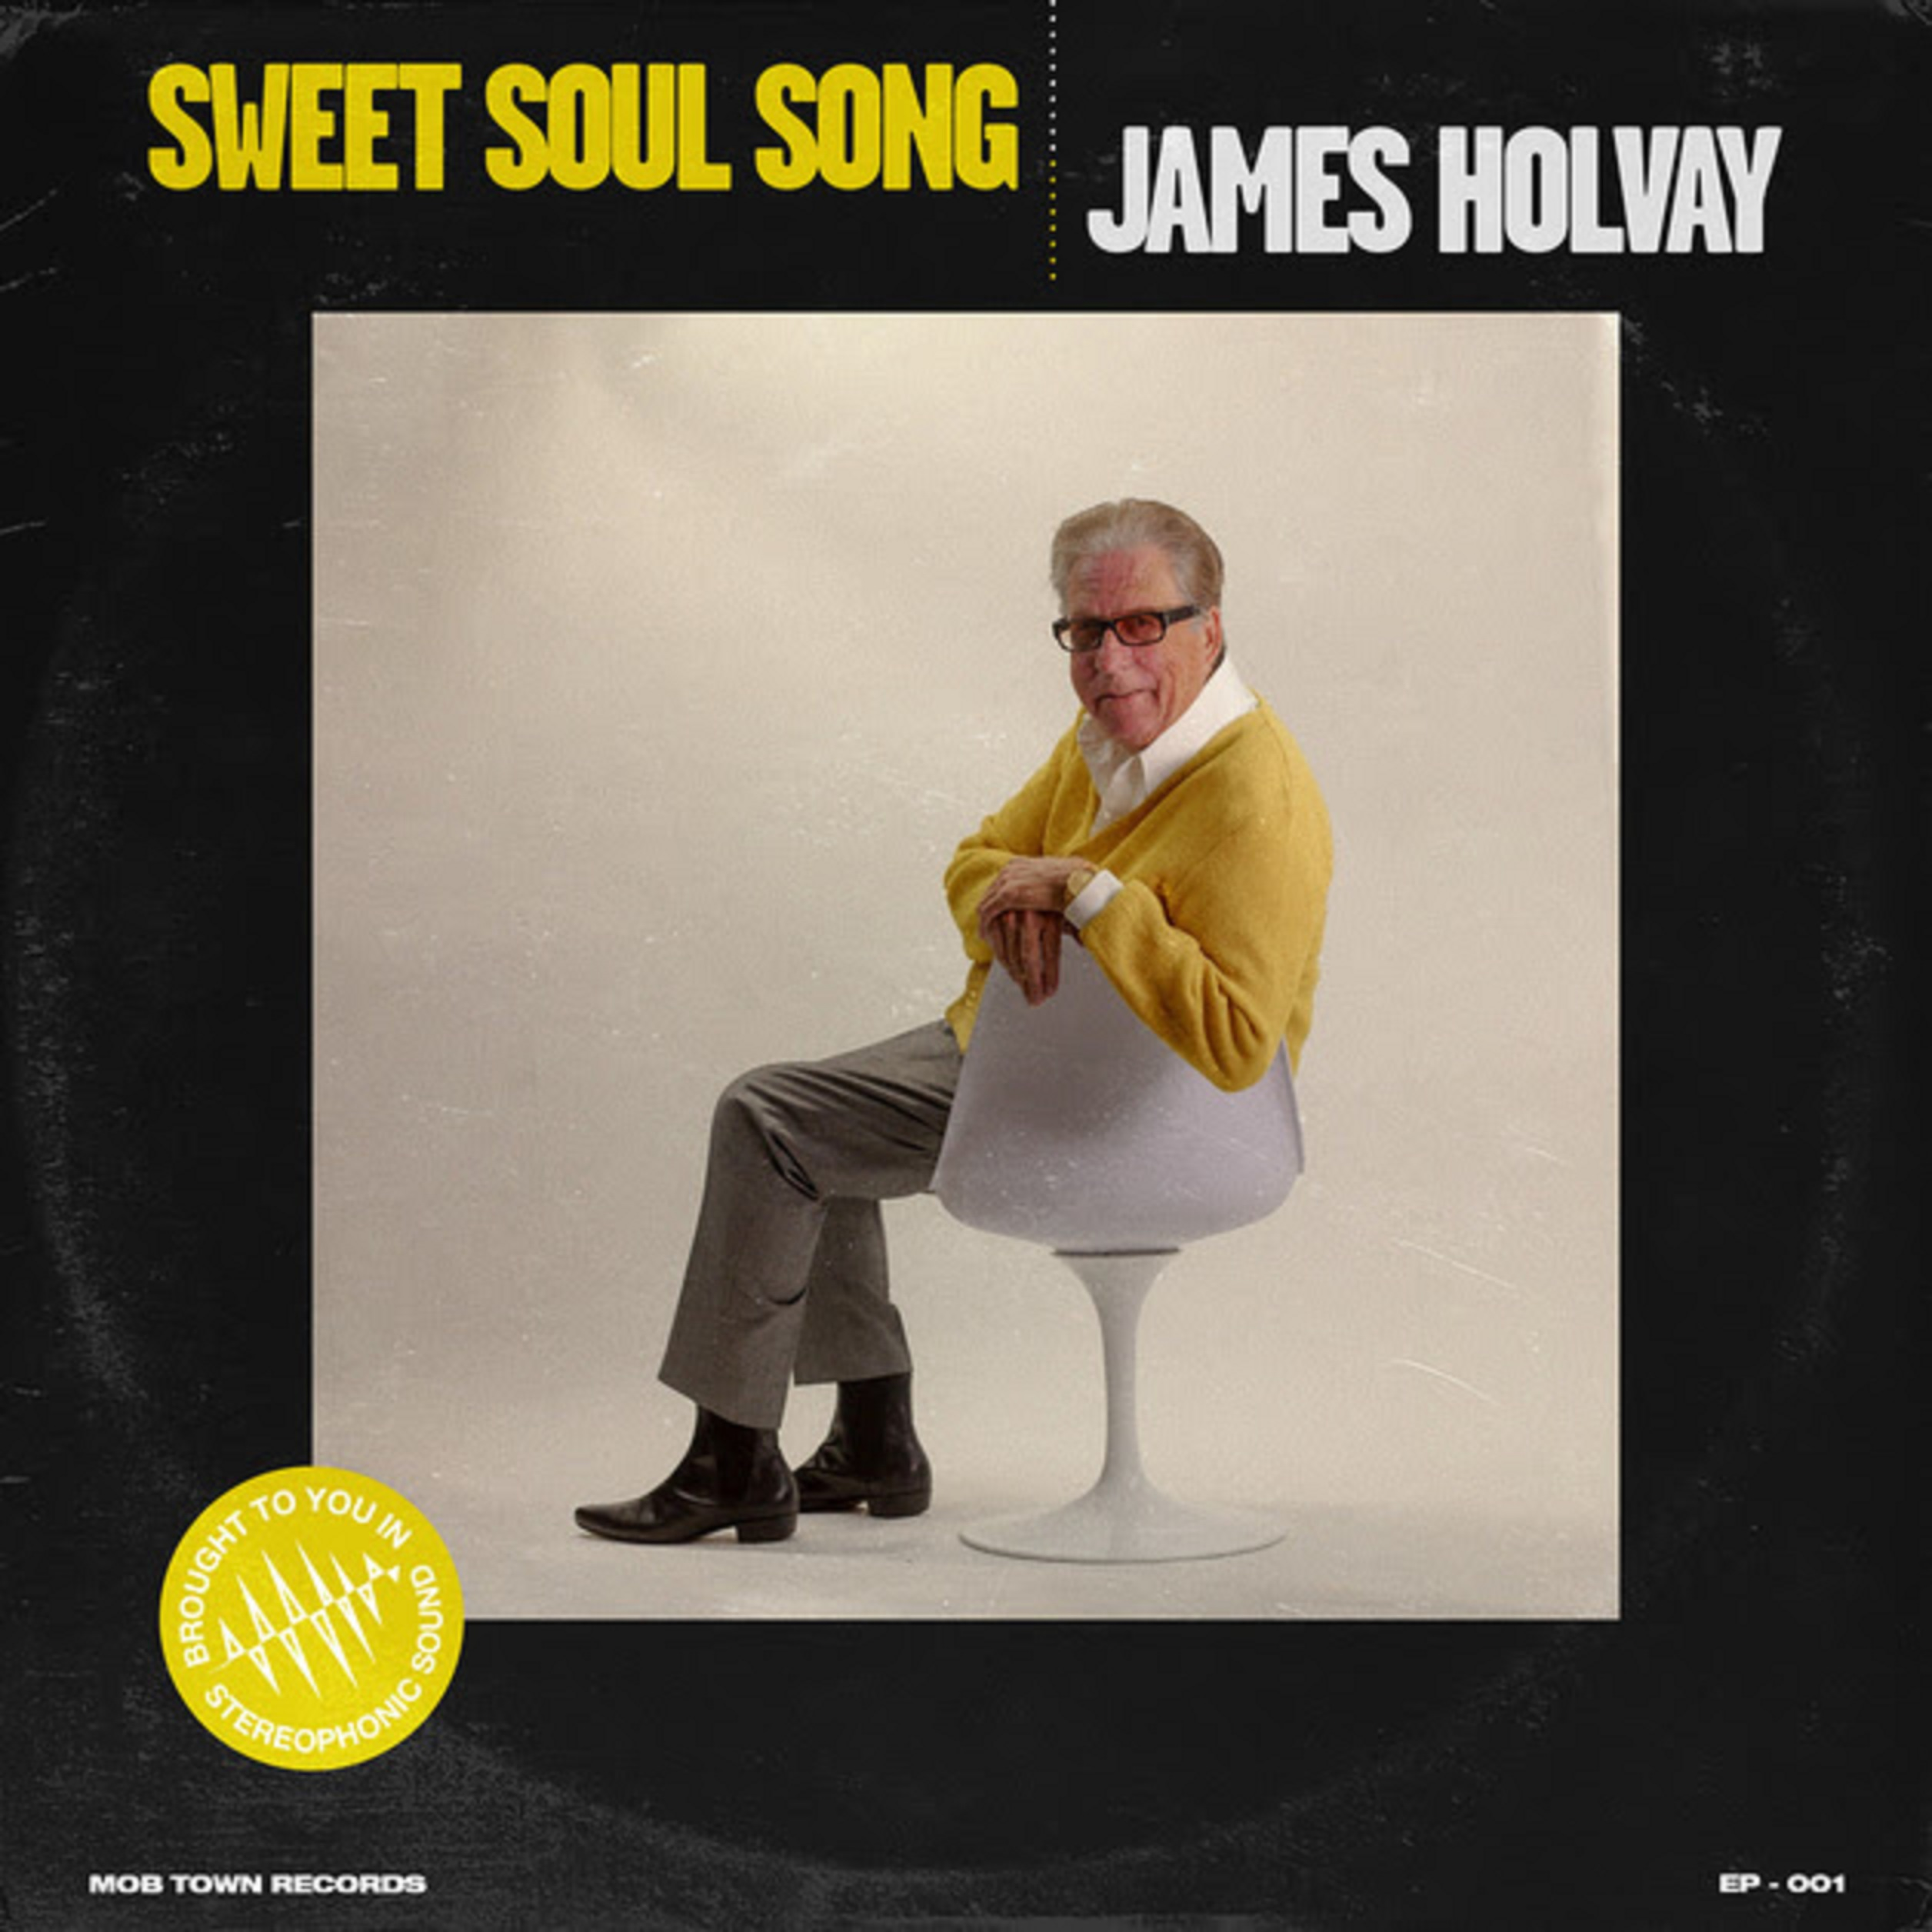 JAMES HOLVAY REVISITS THE CLASSIC WINDY CITY SOUND OF THE '60S ON HIS SWEET SOUL SONG EP